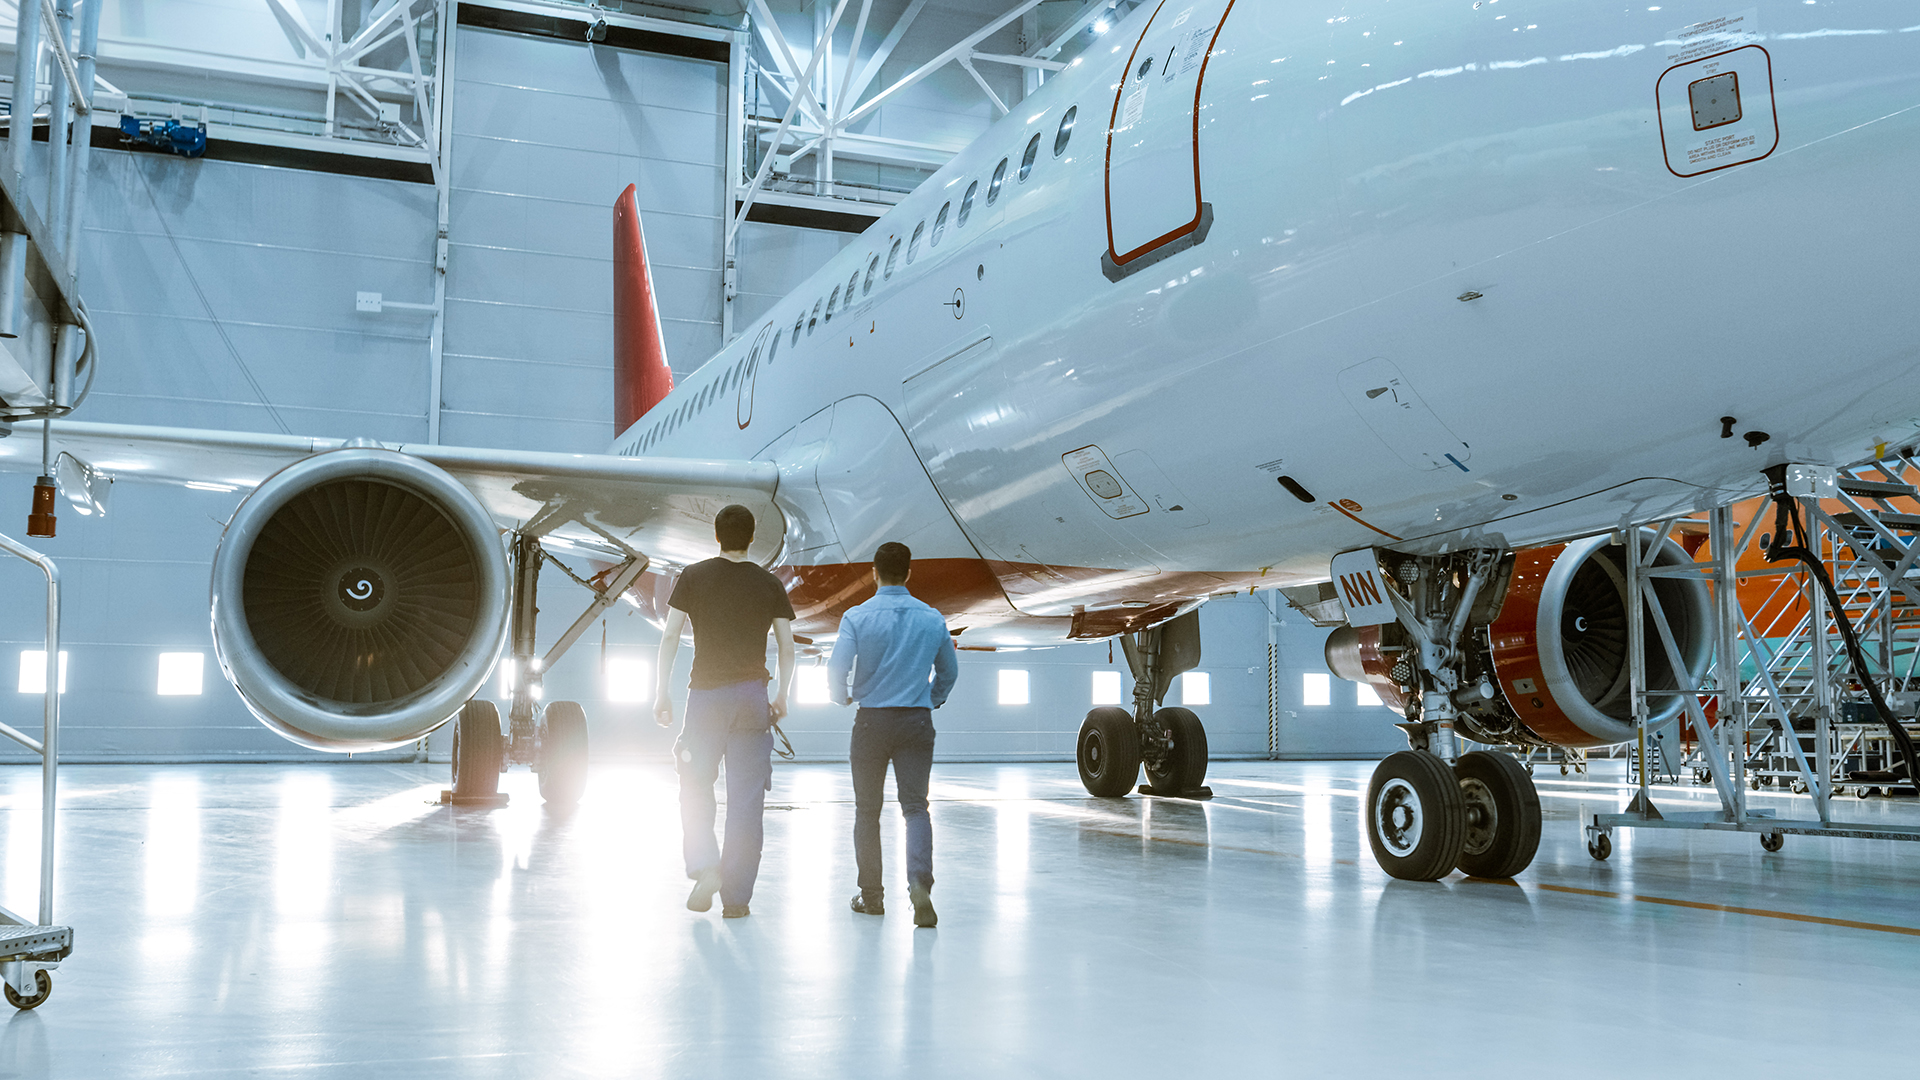 Aircraft mechanics and aircraft in hangar